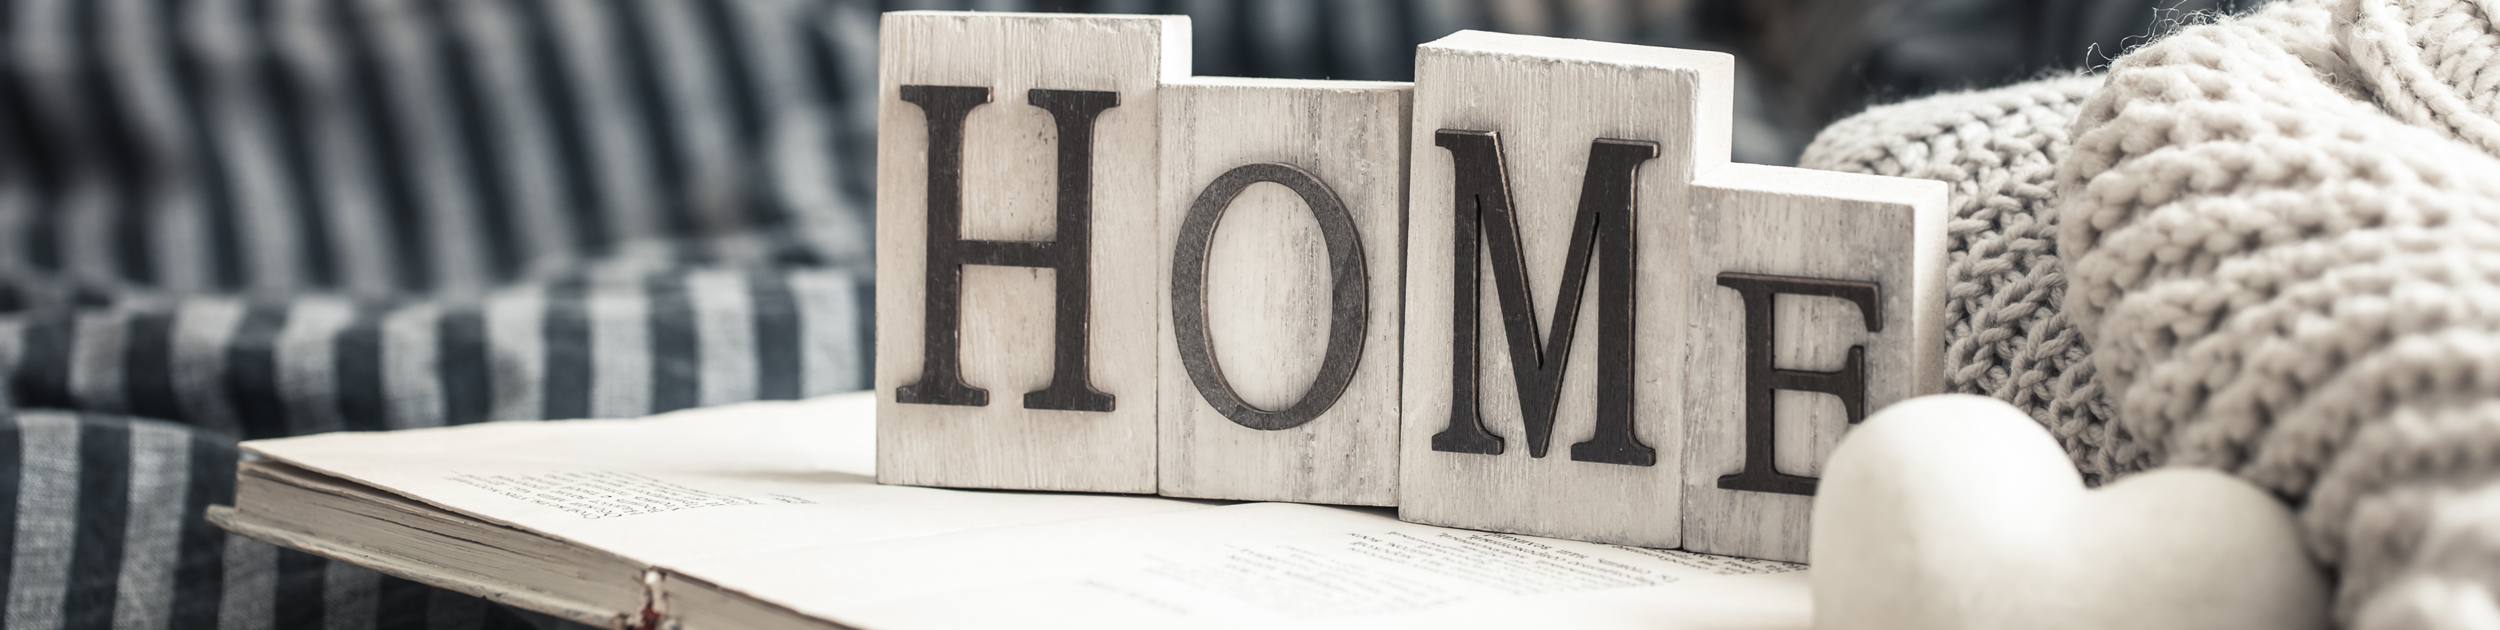 The word HOME spelled out in wooden blocks in a cozy environment